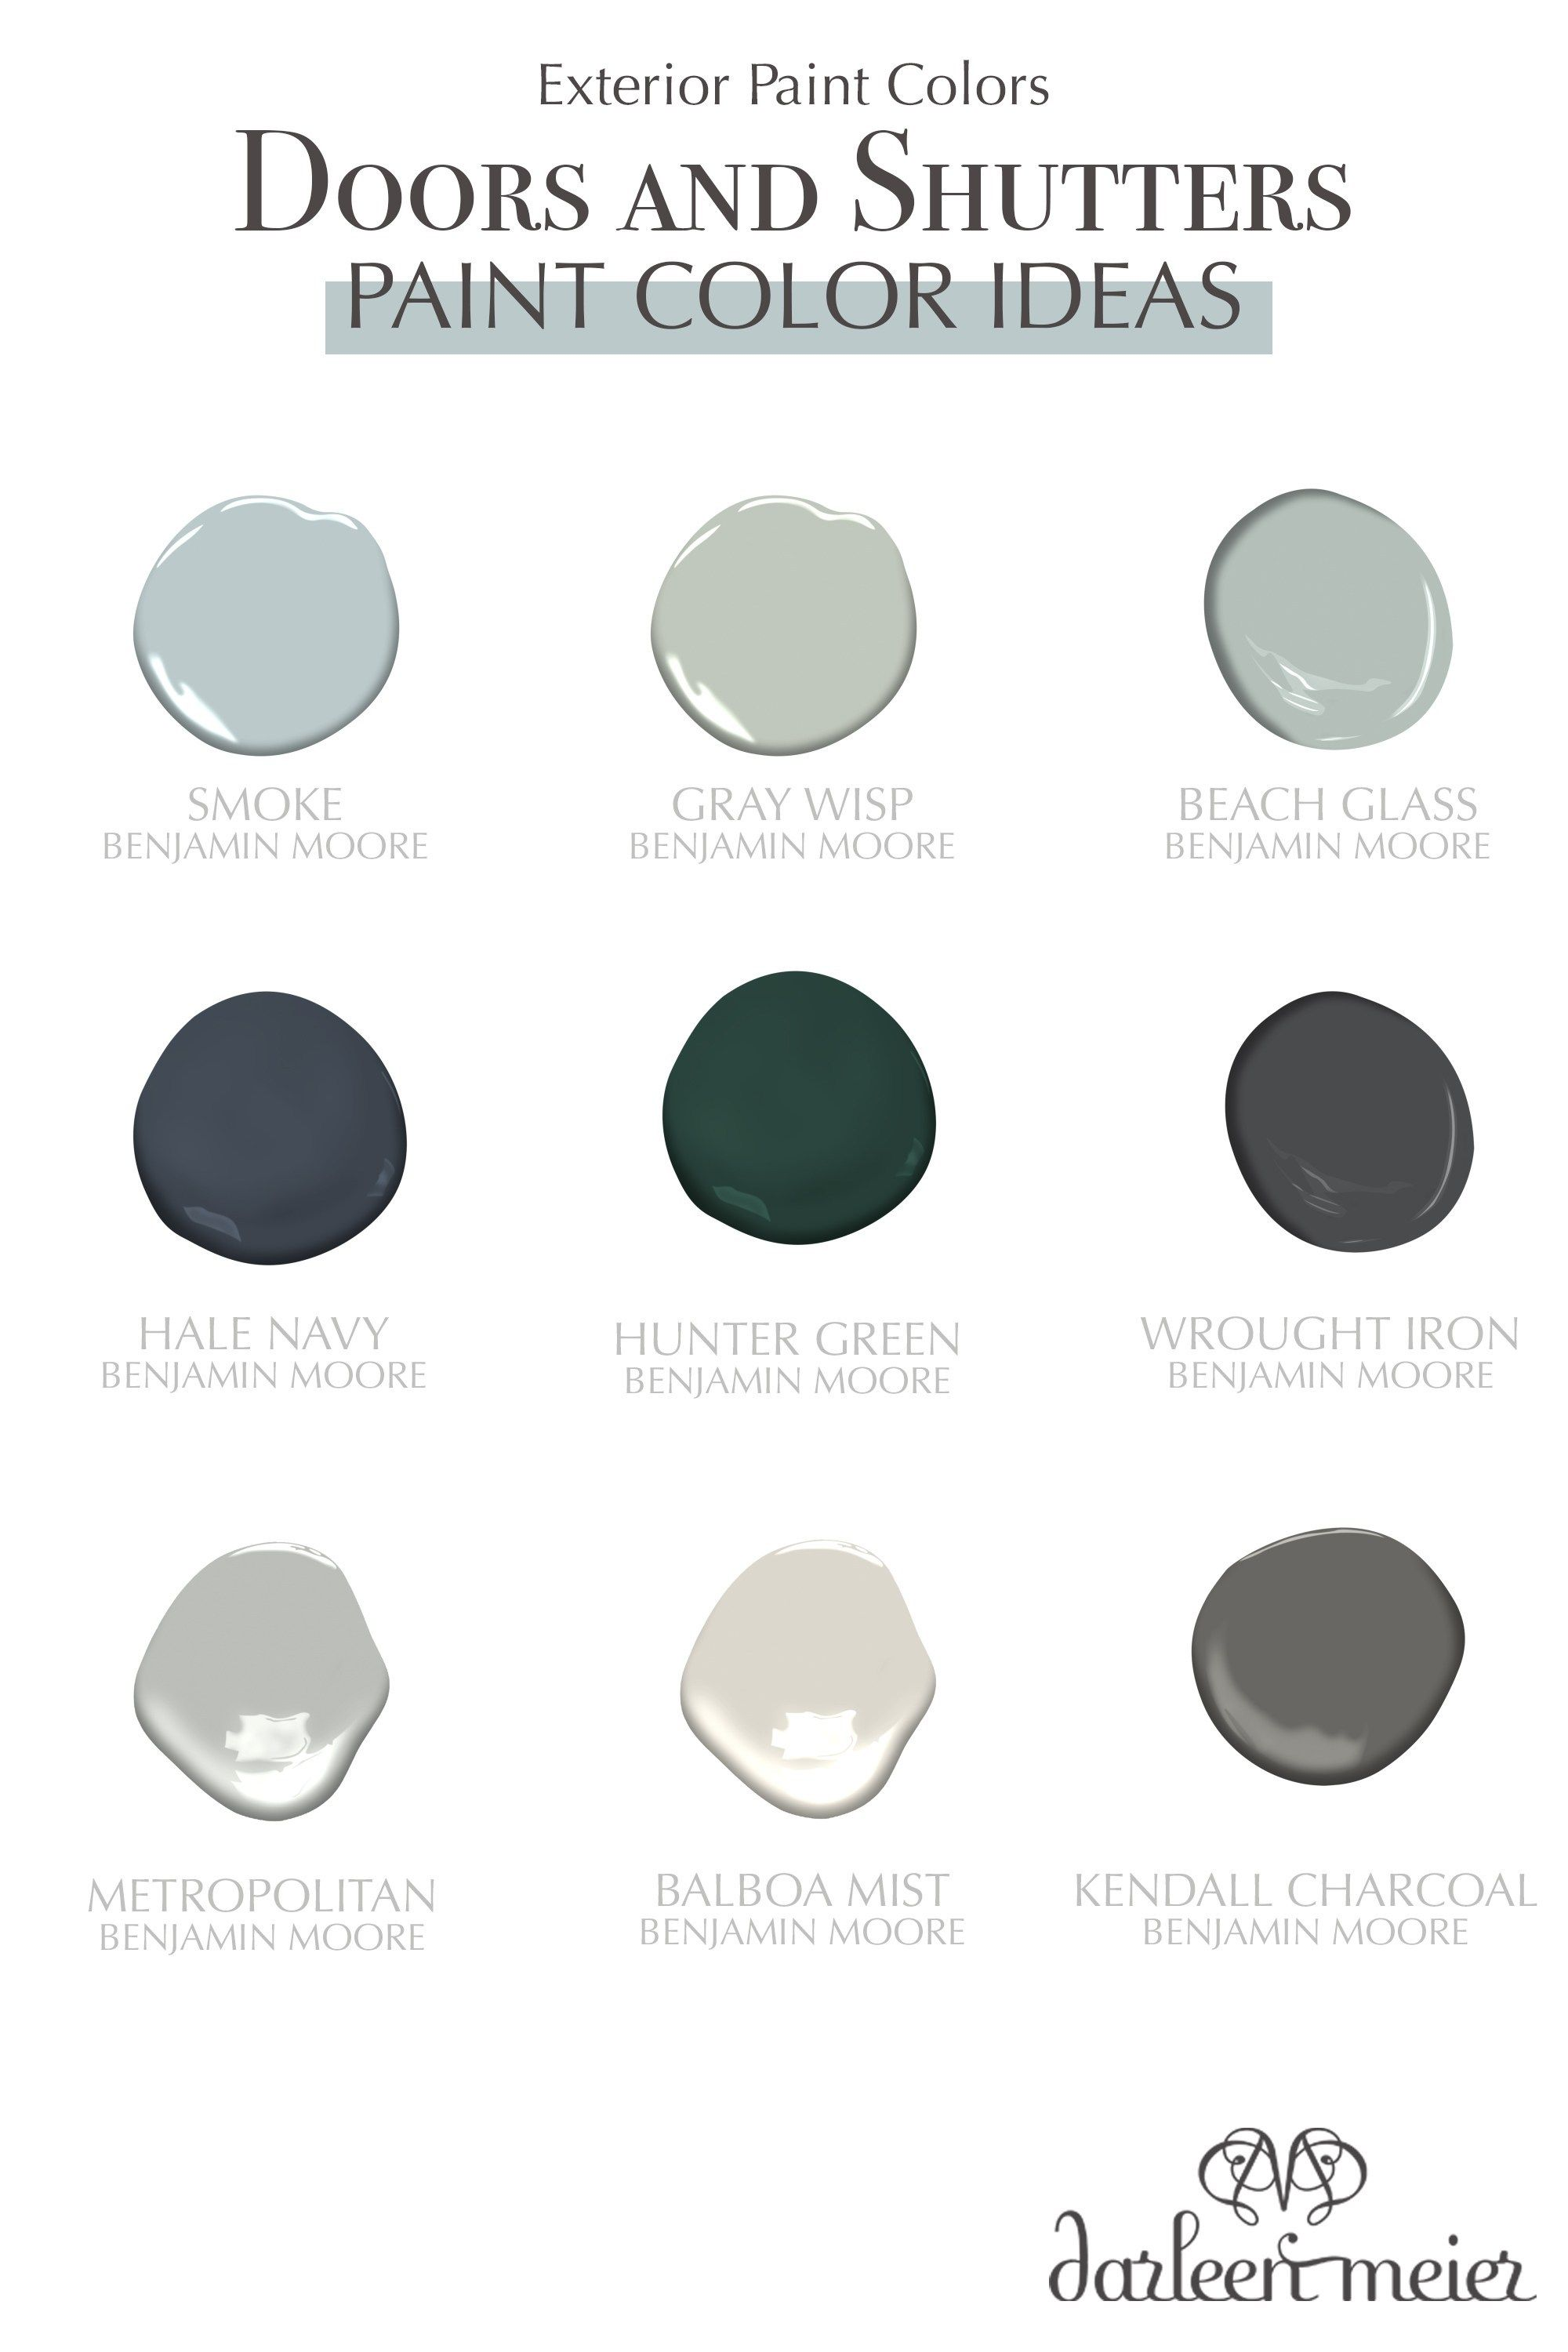 The Best Blue And Gray Exterior Paint Colors To Paint Doors